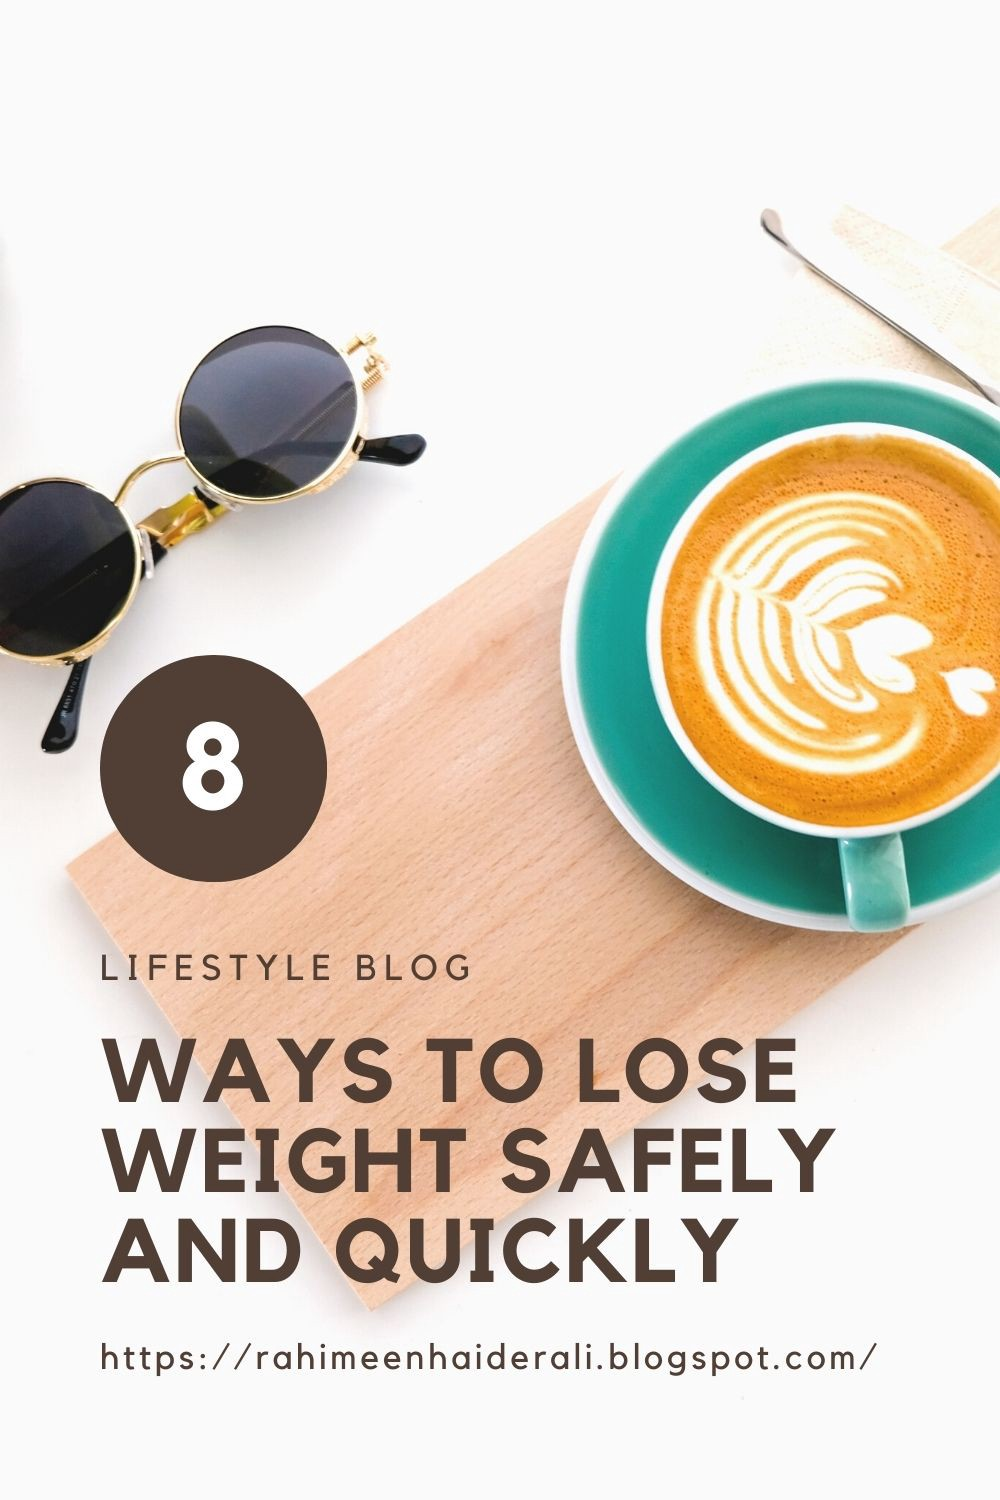 8 WAYS TO LOSE WEIGHT SAFELY AND QUICKLY